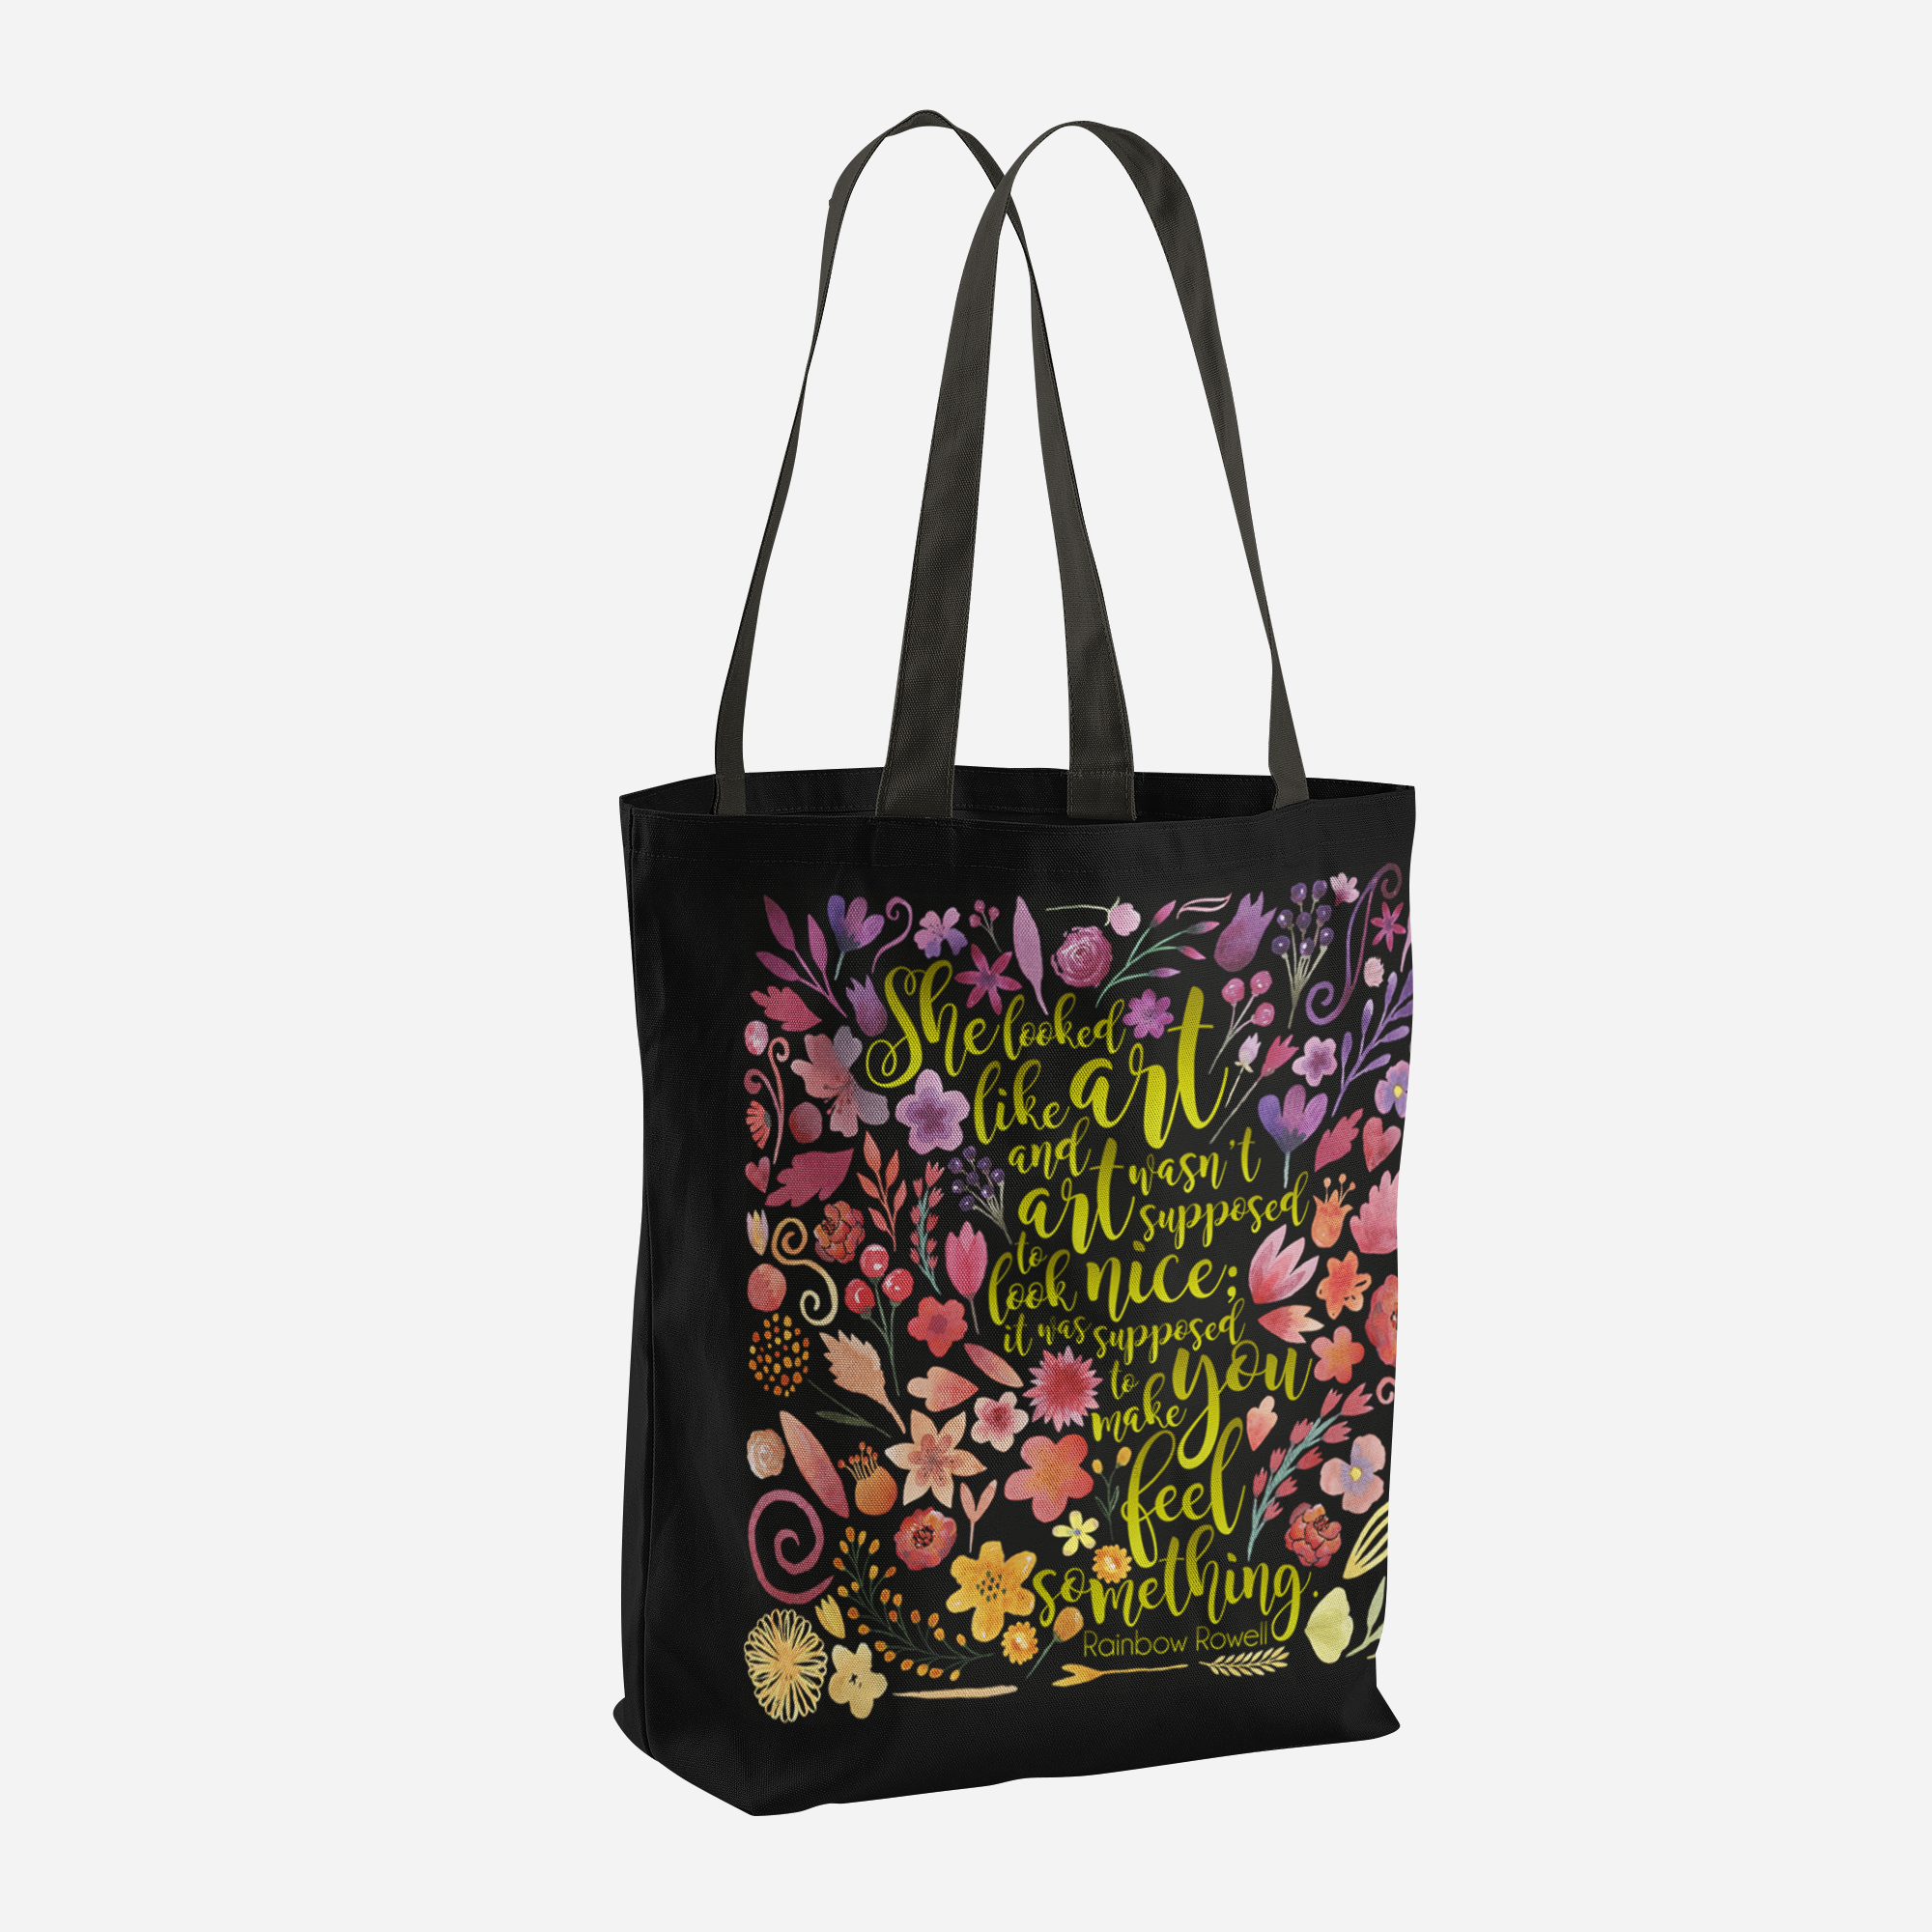 She looked like art... Eleanor and Park Quote Tote Bag - LitLifeCo.